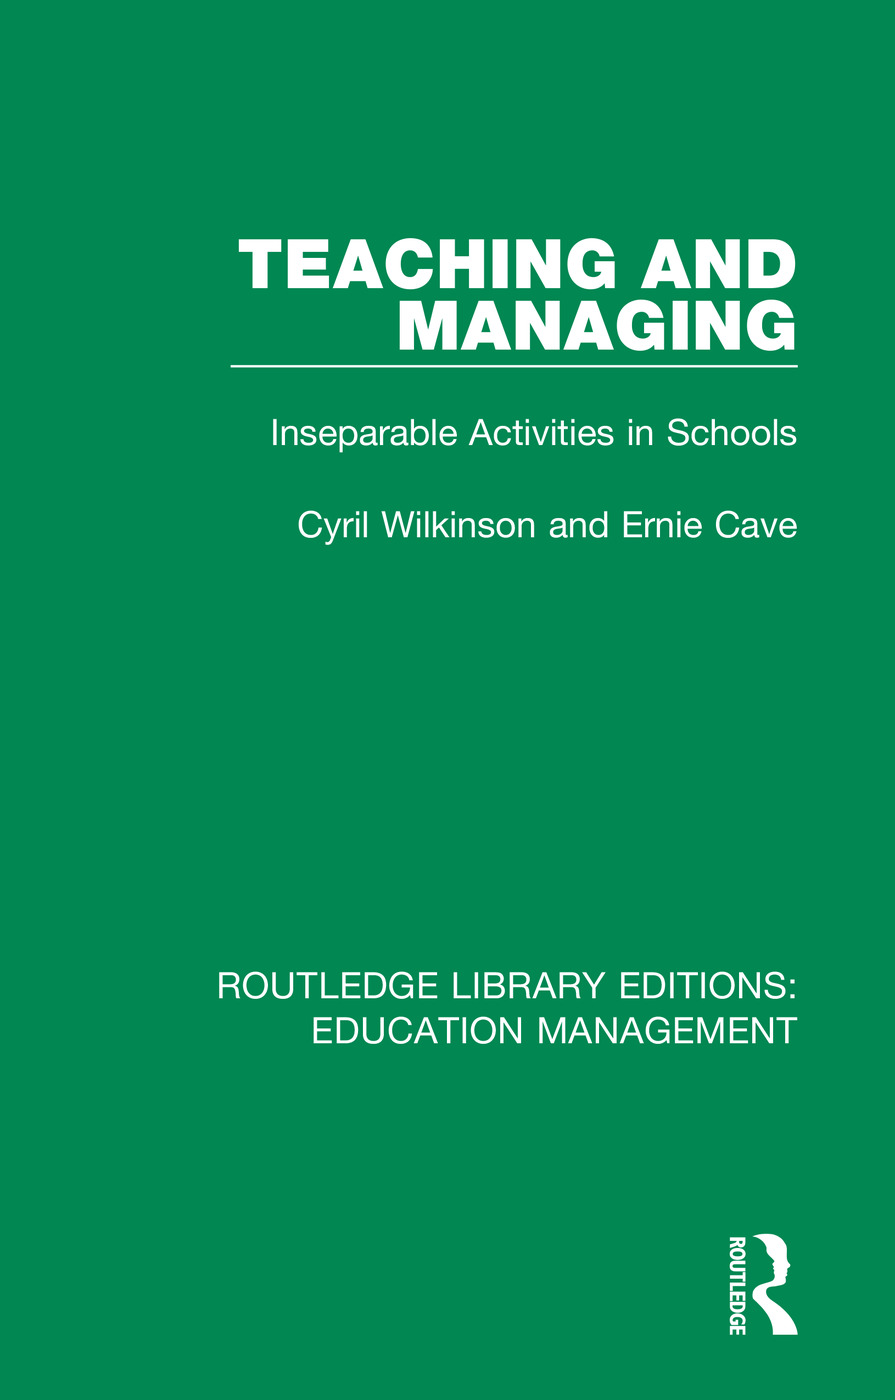 Teaching and Managing: Inseparable Activities in Schools book cover